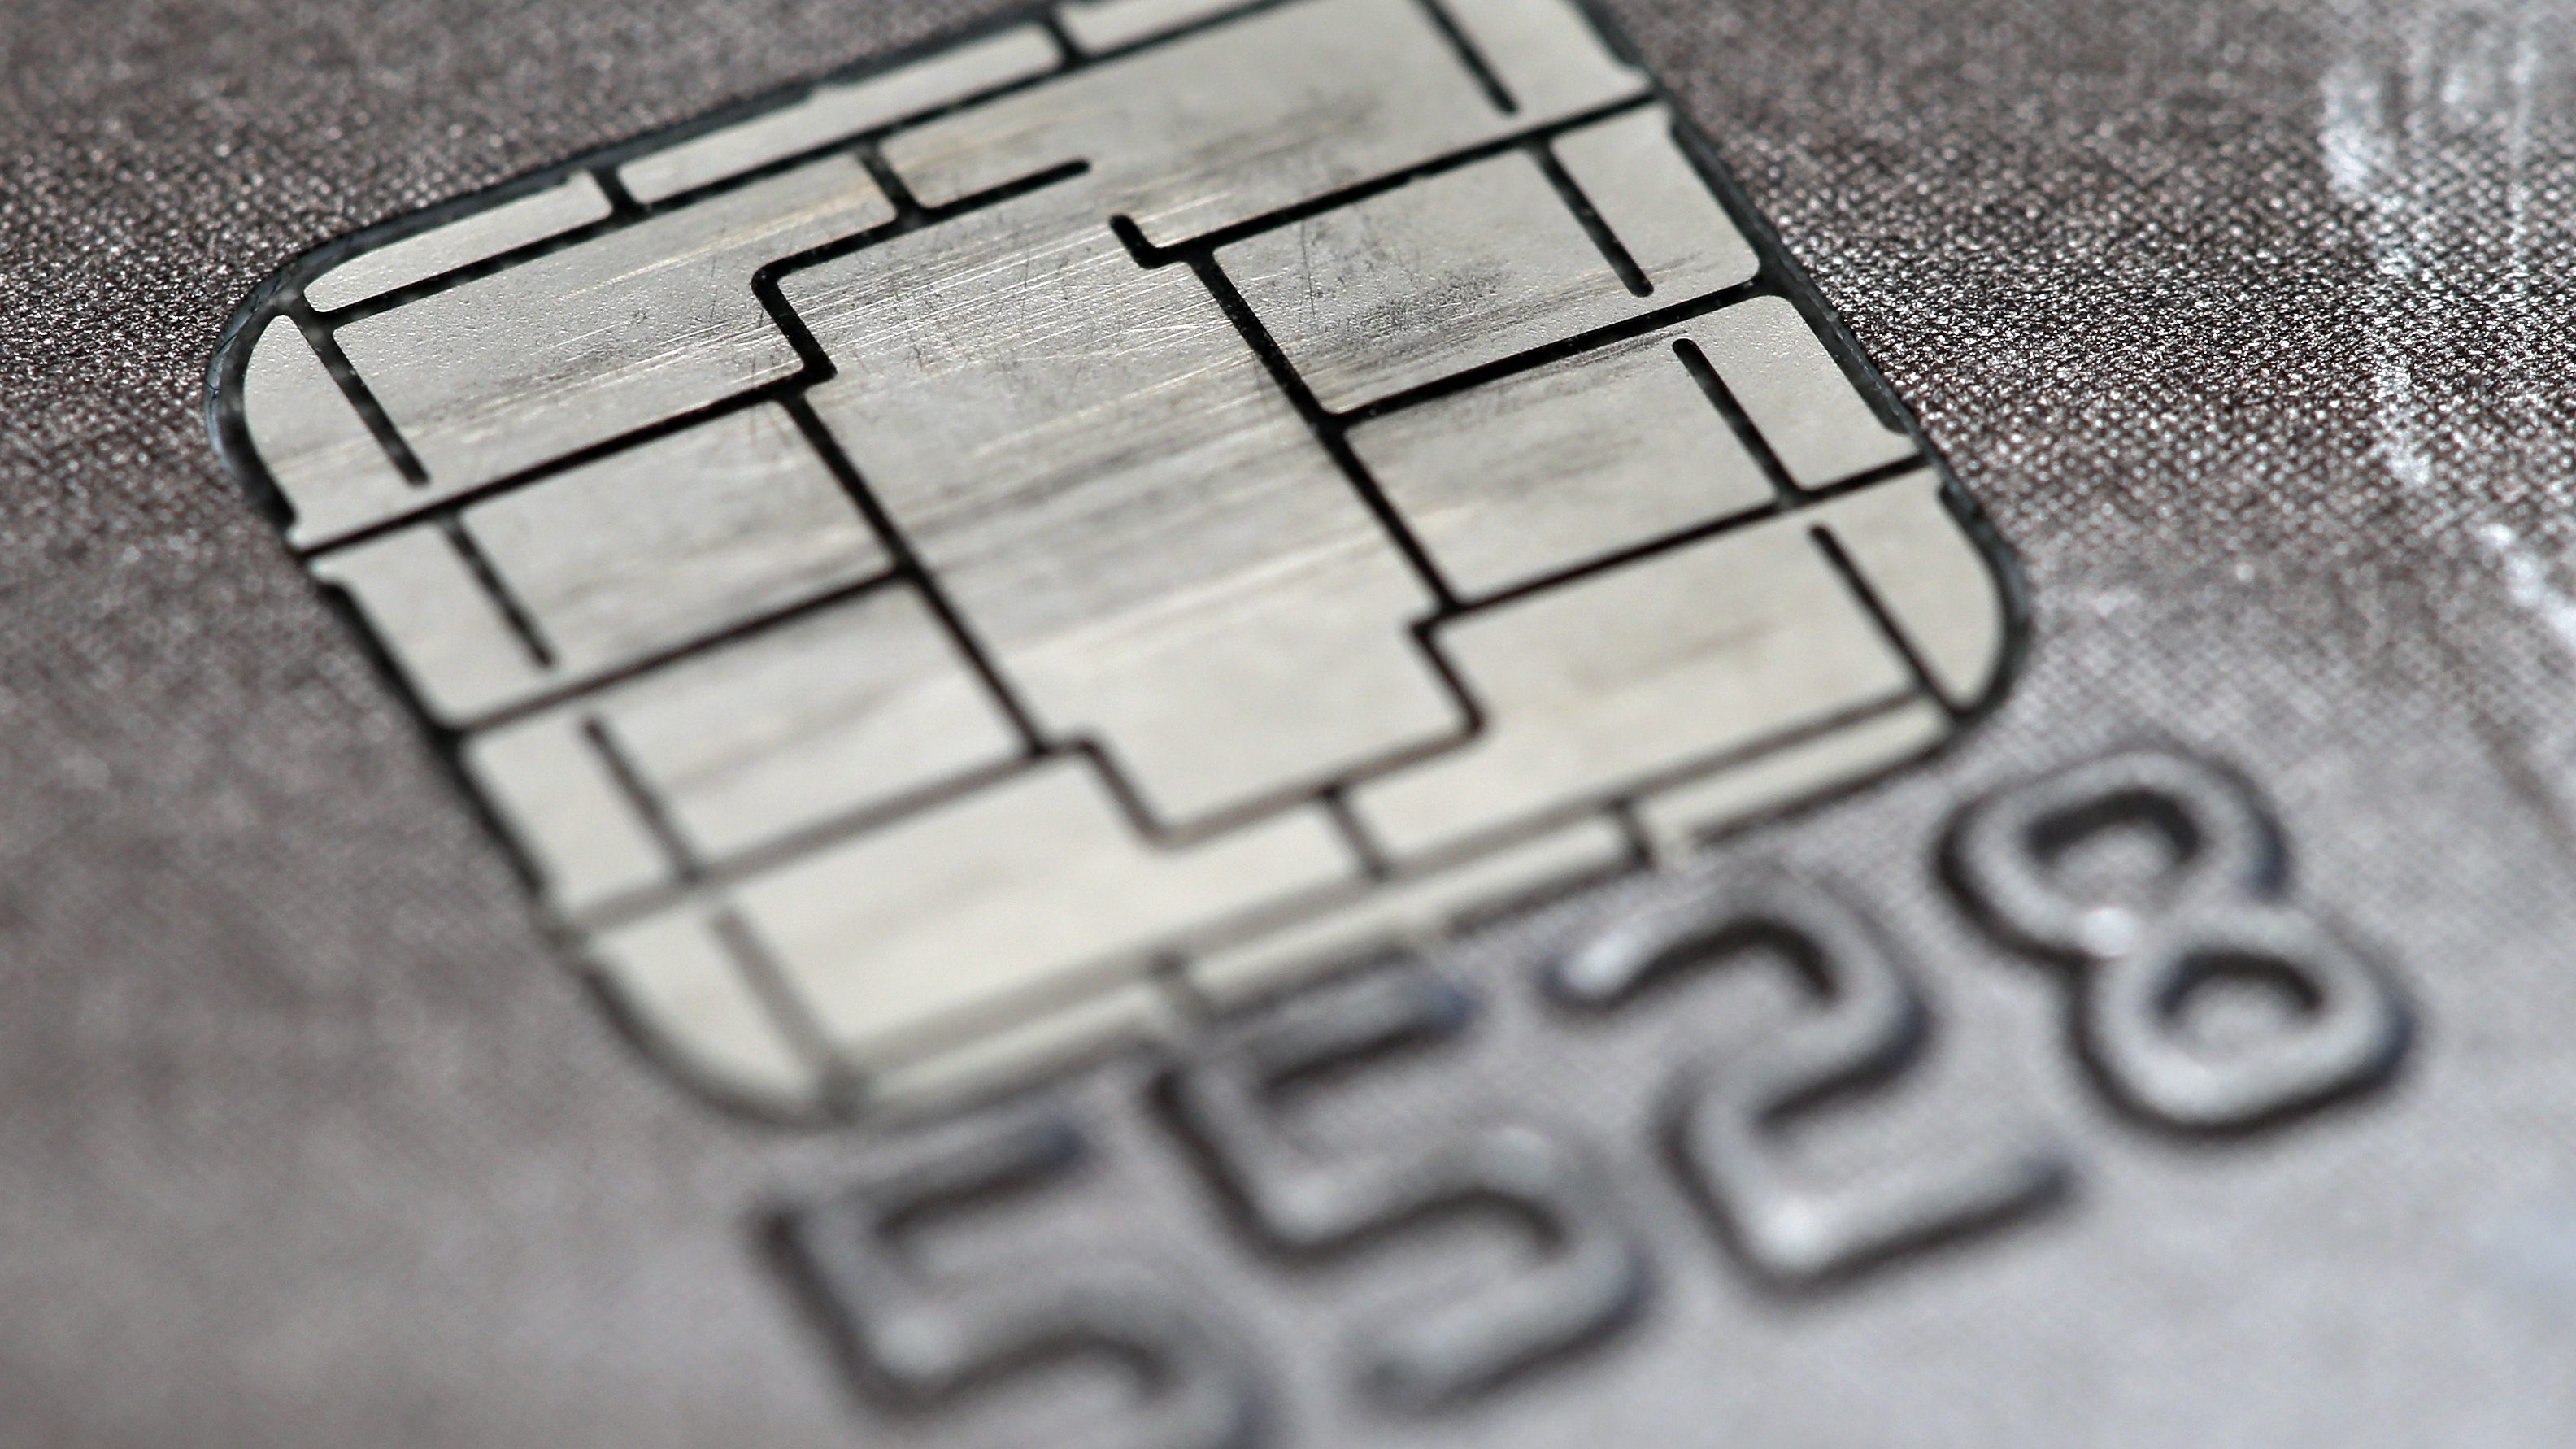 FILE -This June 10, 2015 photo shows a chip credit card in Philadelphia.   Visa says its improving its smart chip-embedded cards, which have been the source of grumbling from businesses and customers forced to wait for transactions to go through. The company said Tuesday, April 19, 2016 that Quick Chip for EMV will let customers dip and remove cards, usually in two seconds or less, without waiting for purchases to be finalized.